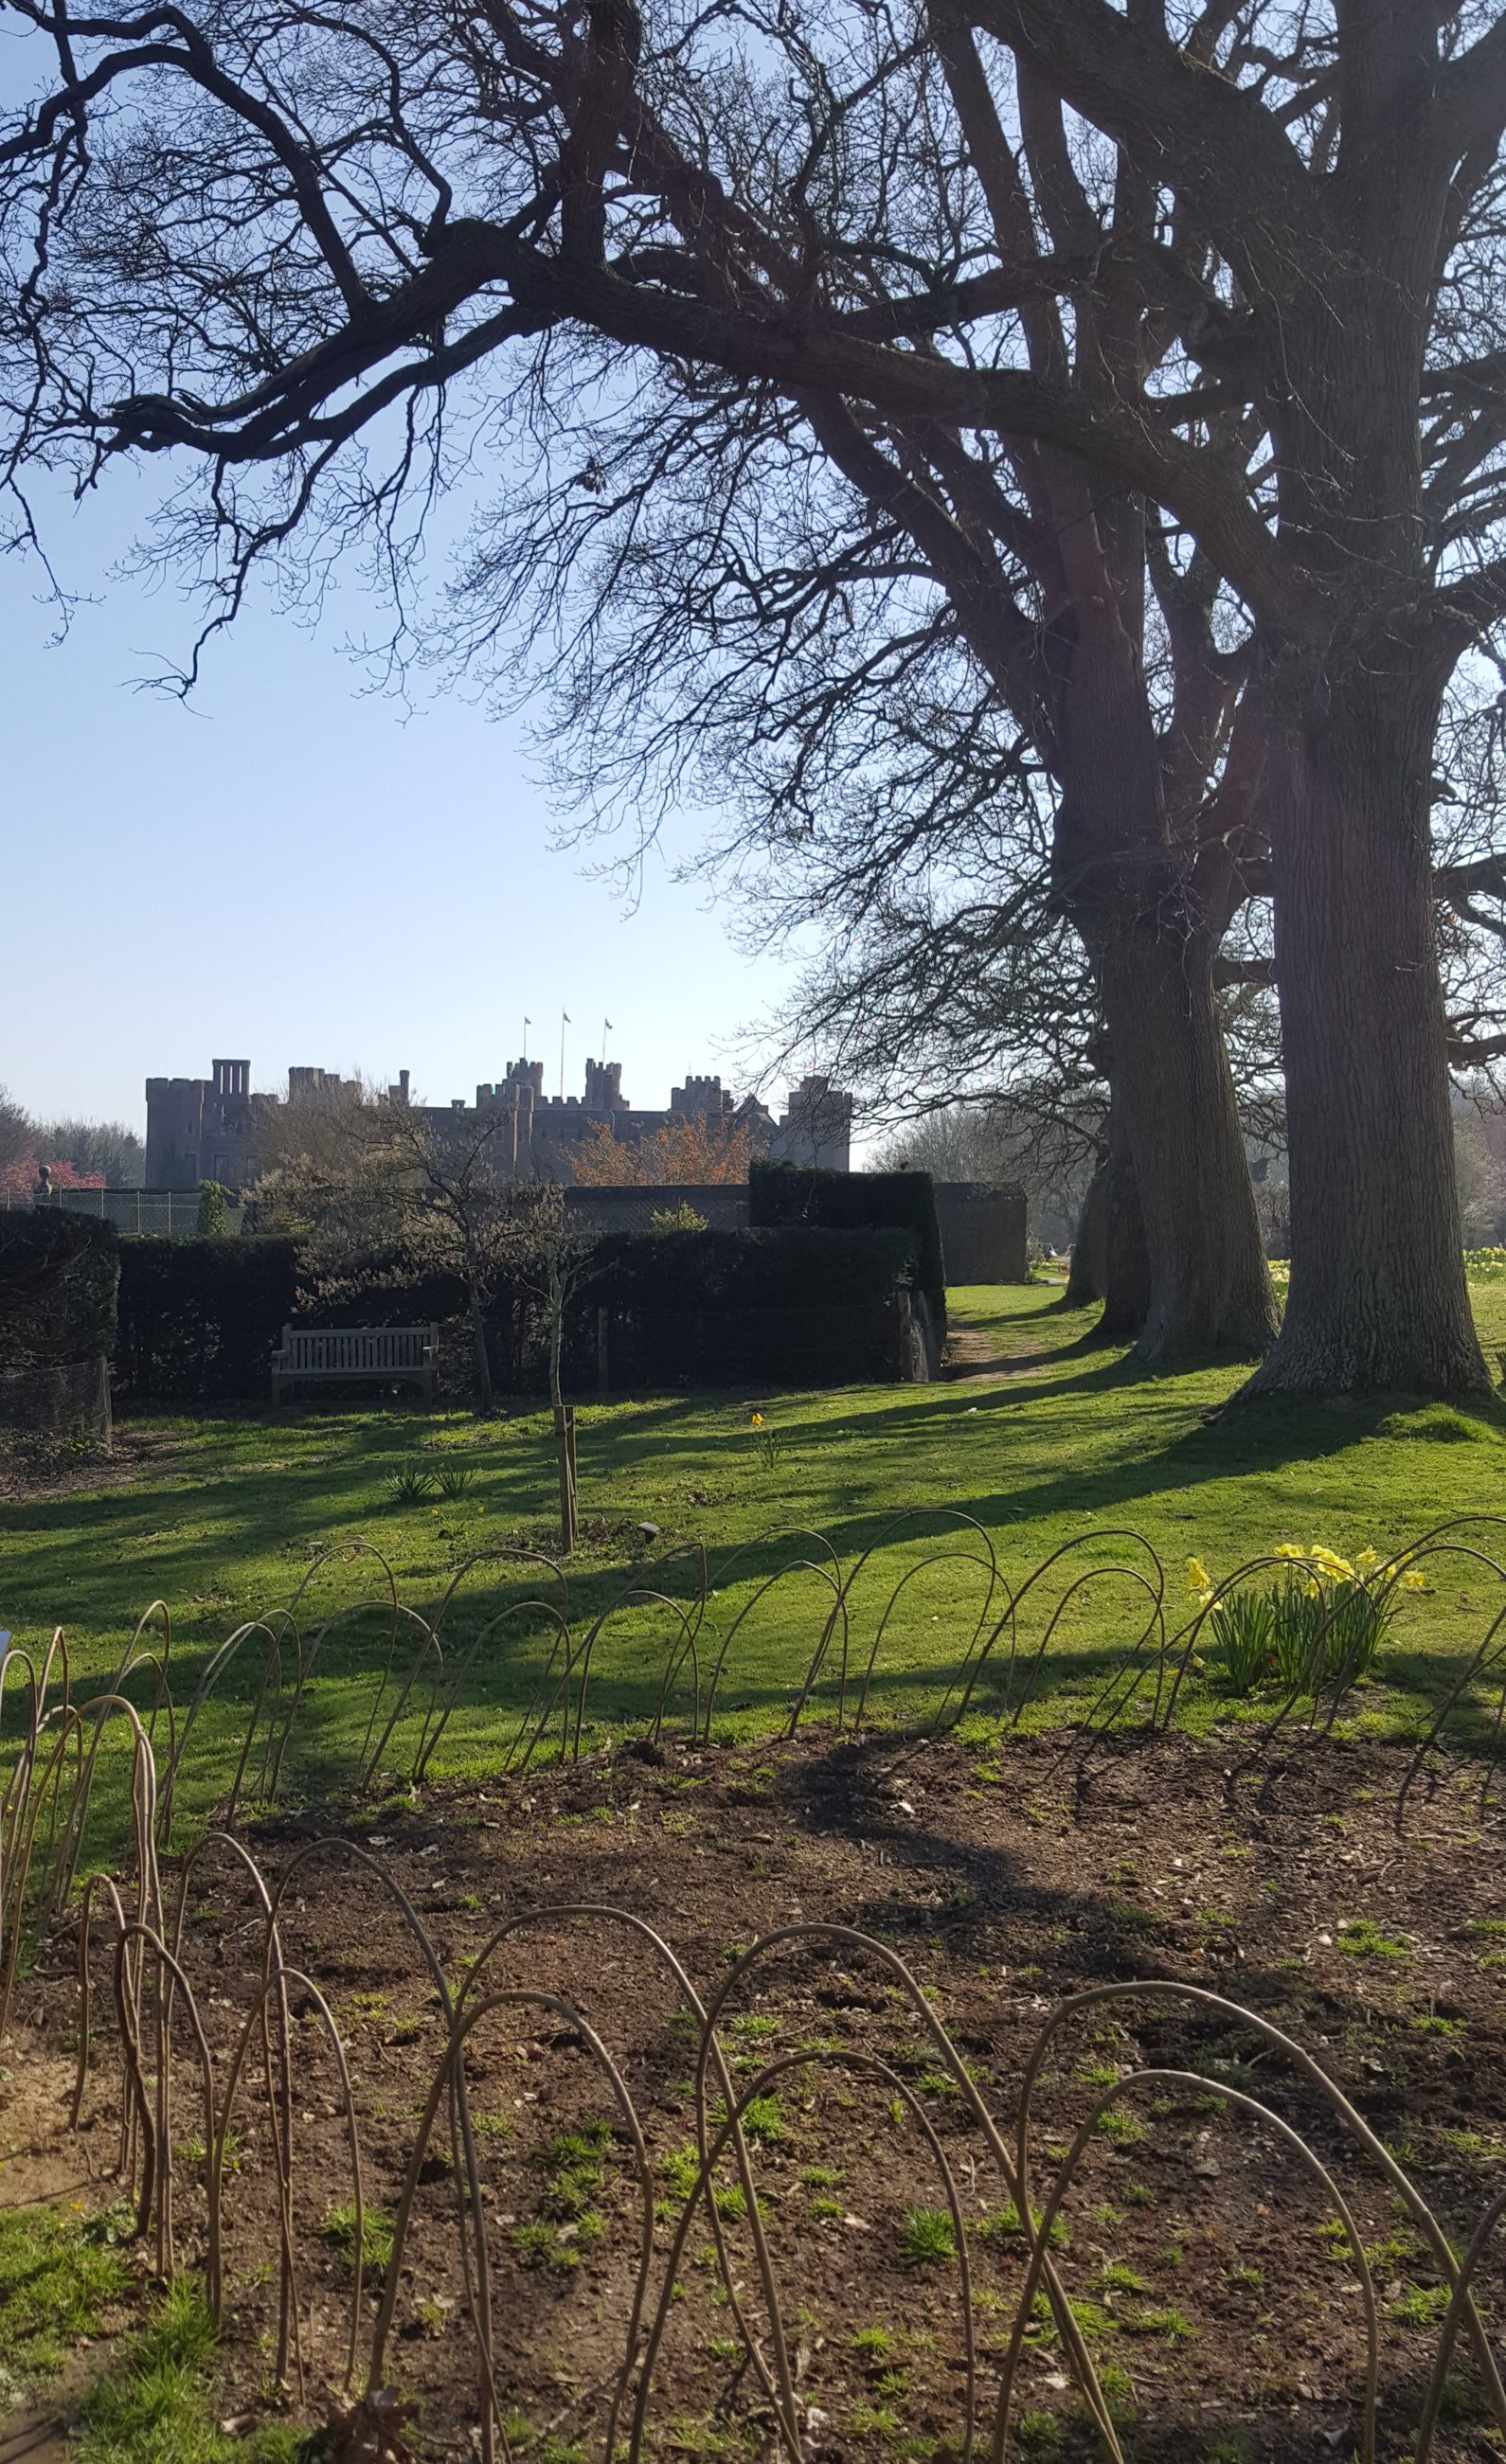 Herstmonceux Castle from the gardens